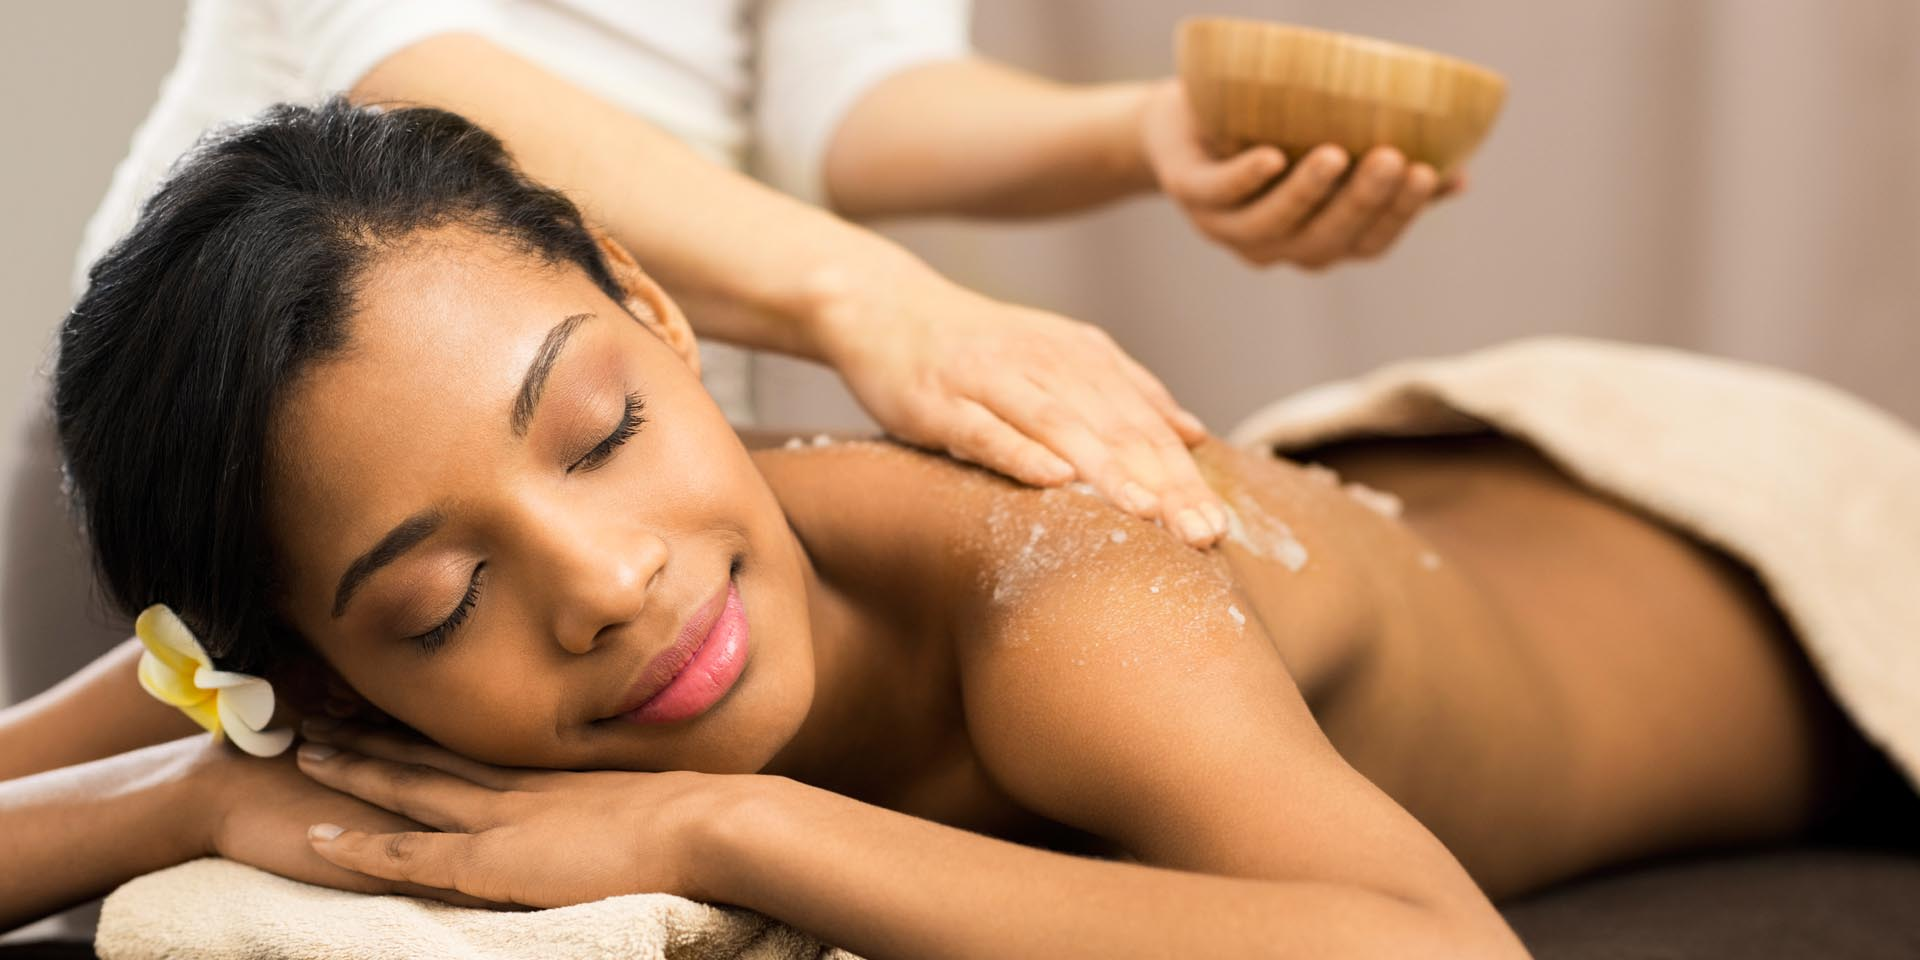 Reasons To Schedule a Body Scrub